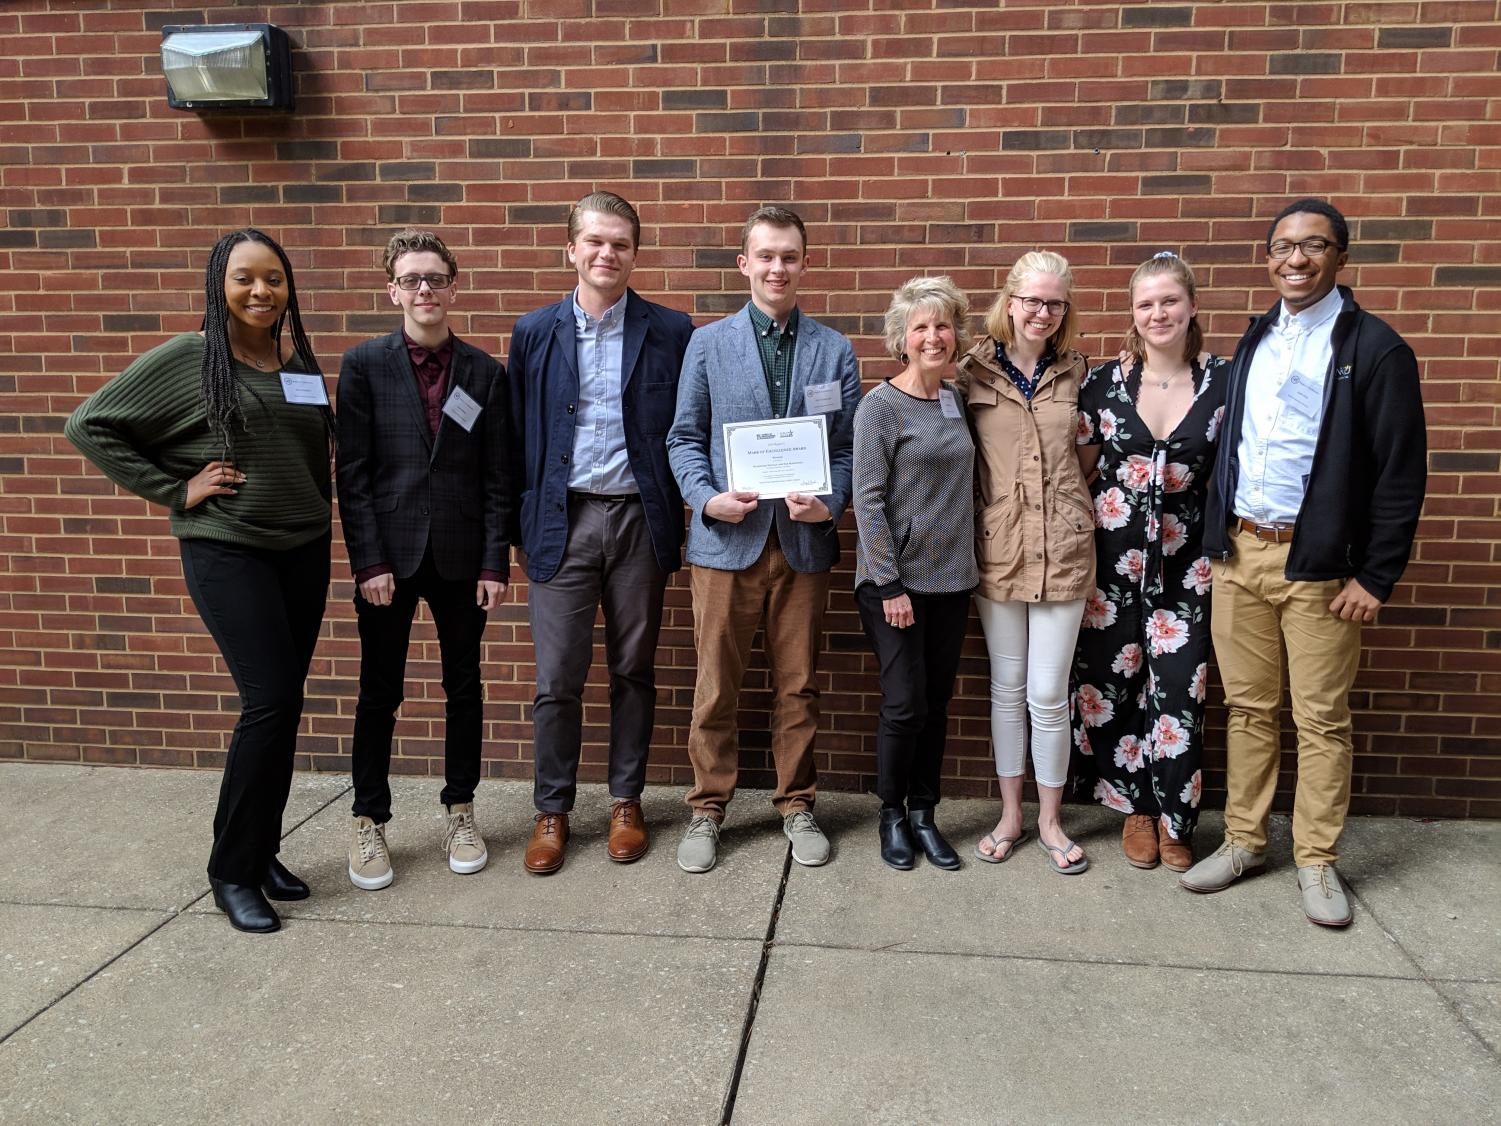 Northerner editors Sierra Newton, Kane Mitten, Billy Keeney, Sam Rosenstiel, advisor Michele Day, editors Natalie Hamren, Nicole Browning and Josh Kelly at the SPJ Mark of Excellence Awards, April 6, 2019.